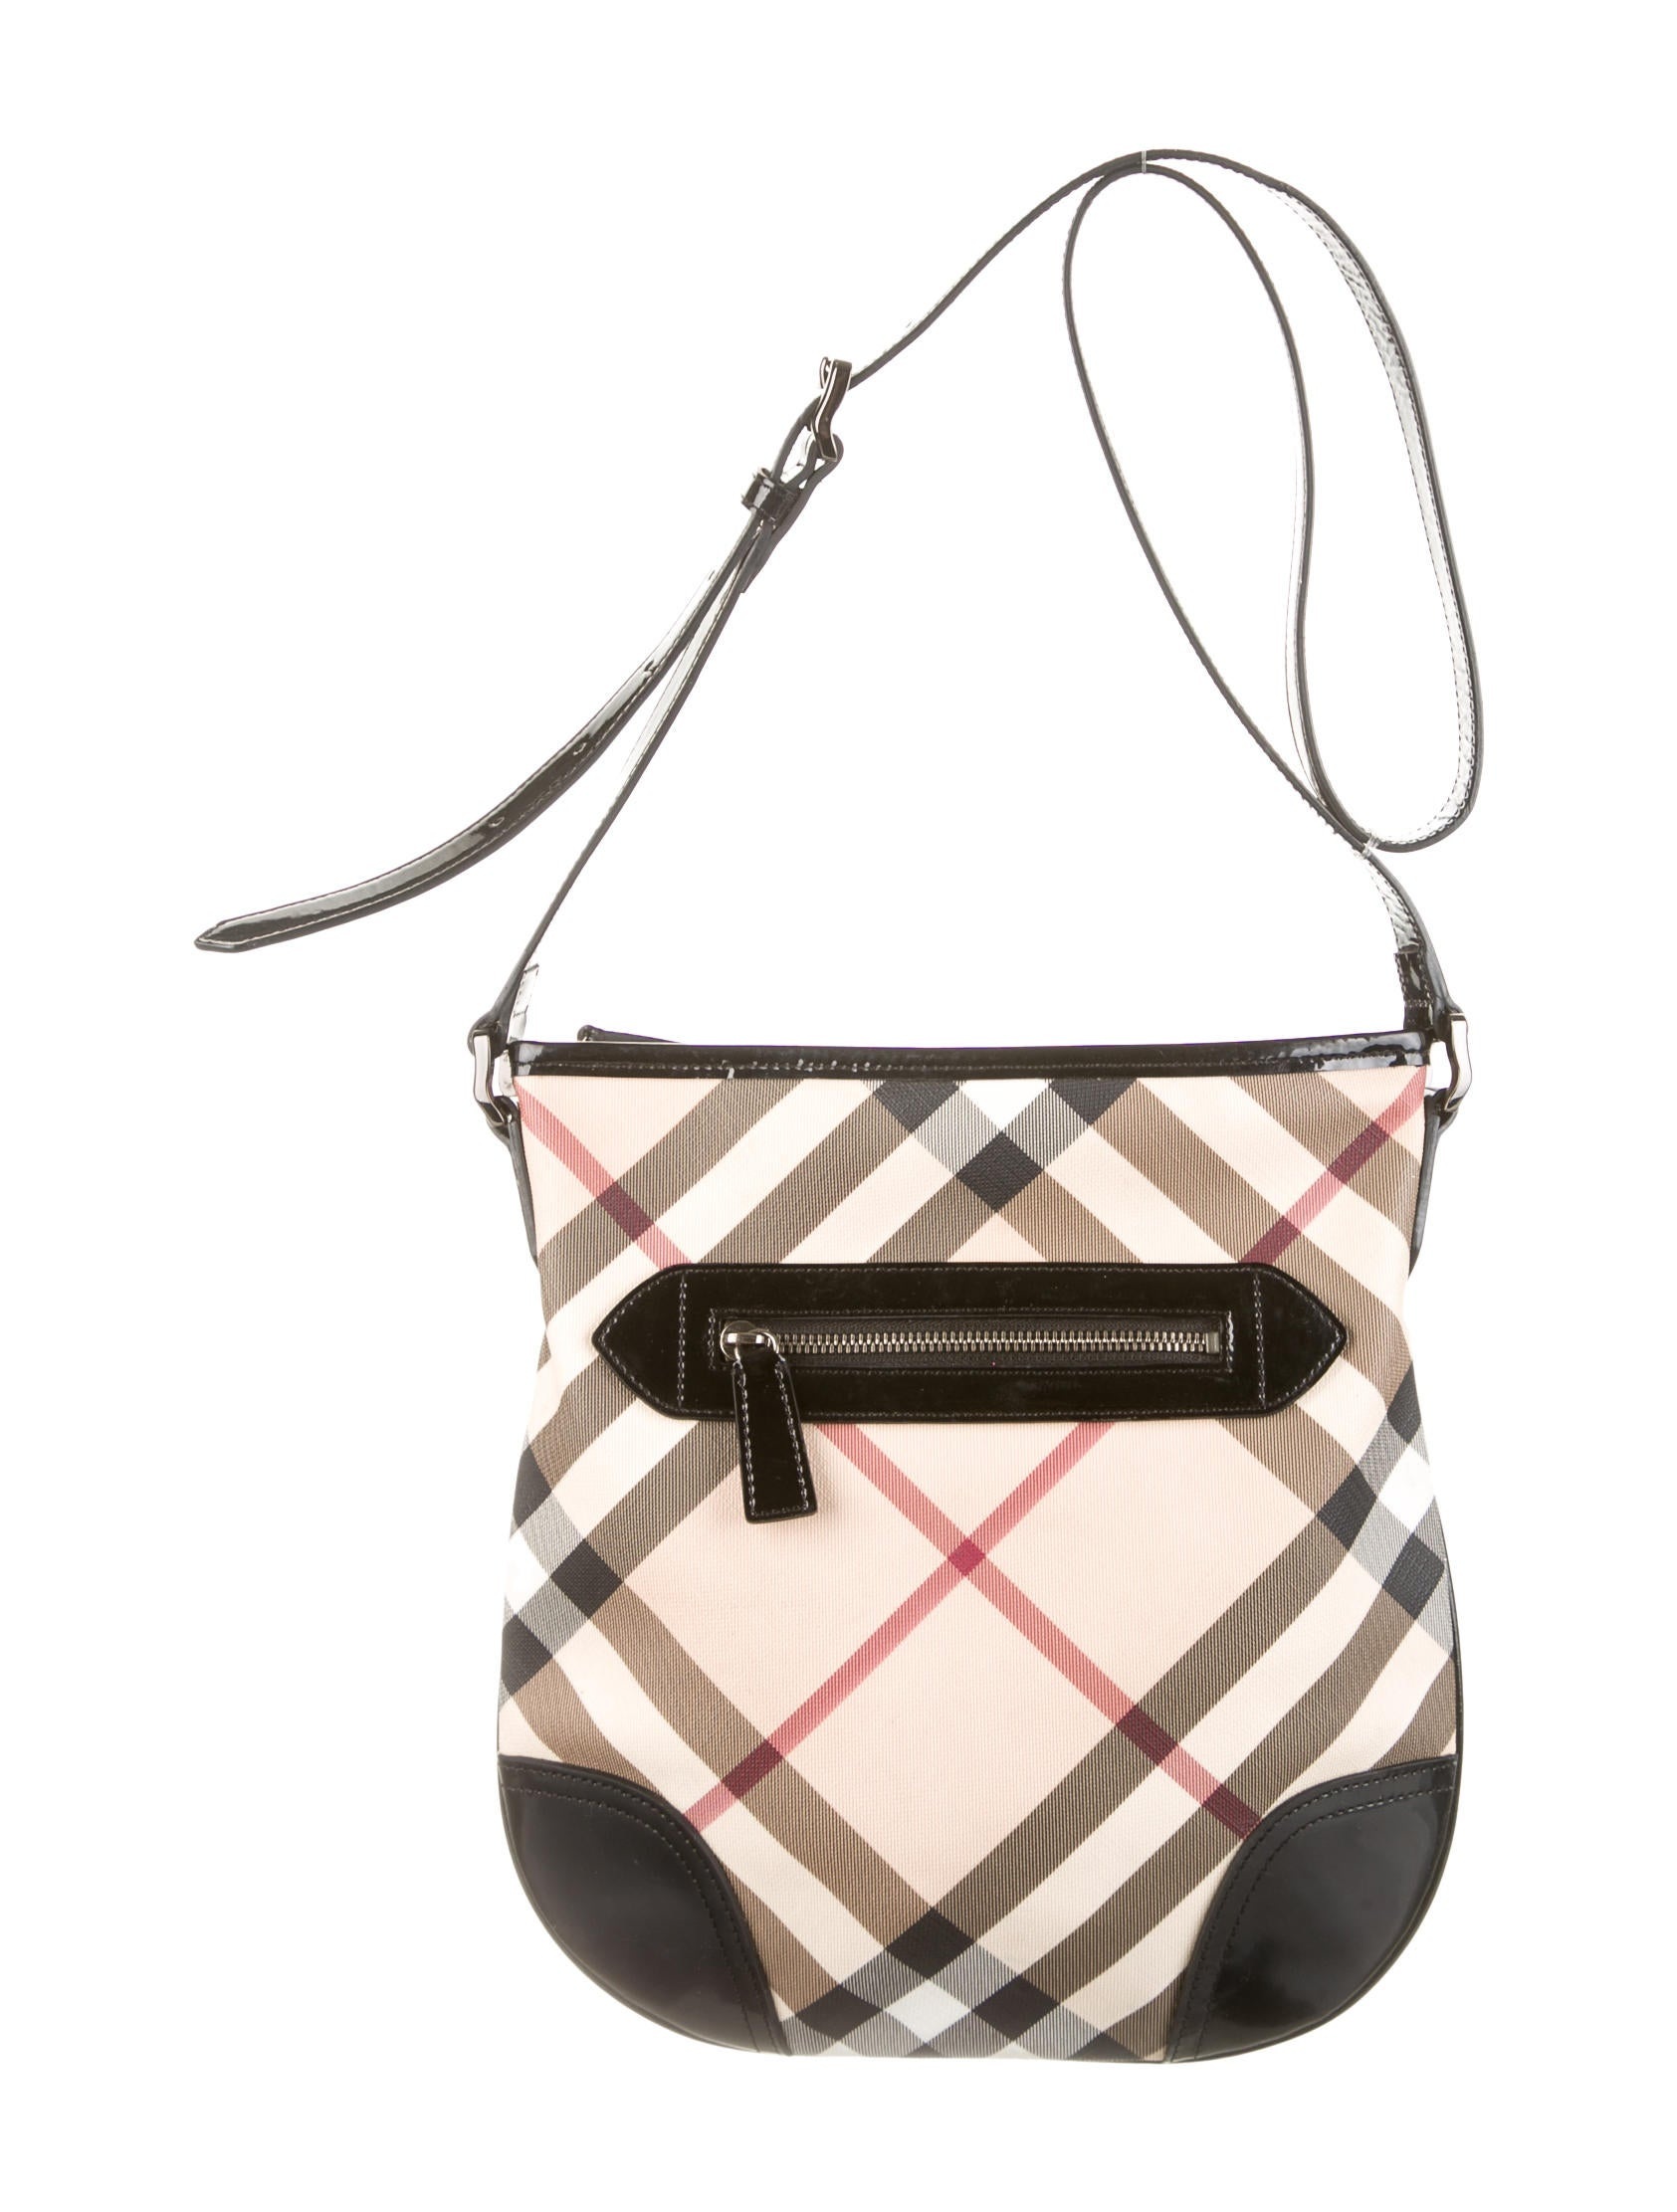 fcd2f91120c Burberry Nova Check Dryden Crossbody Bag - Handbags - BUR38331 | The ...